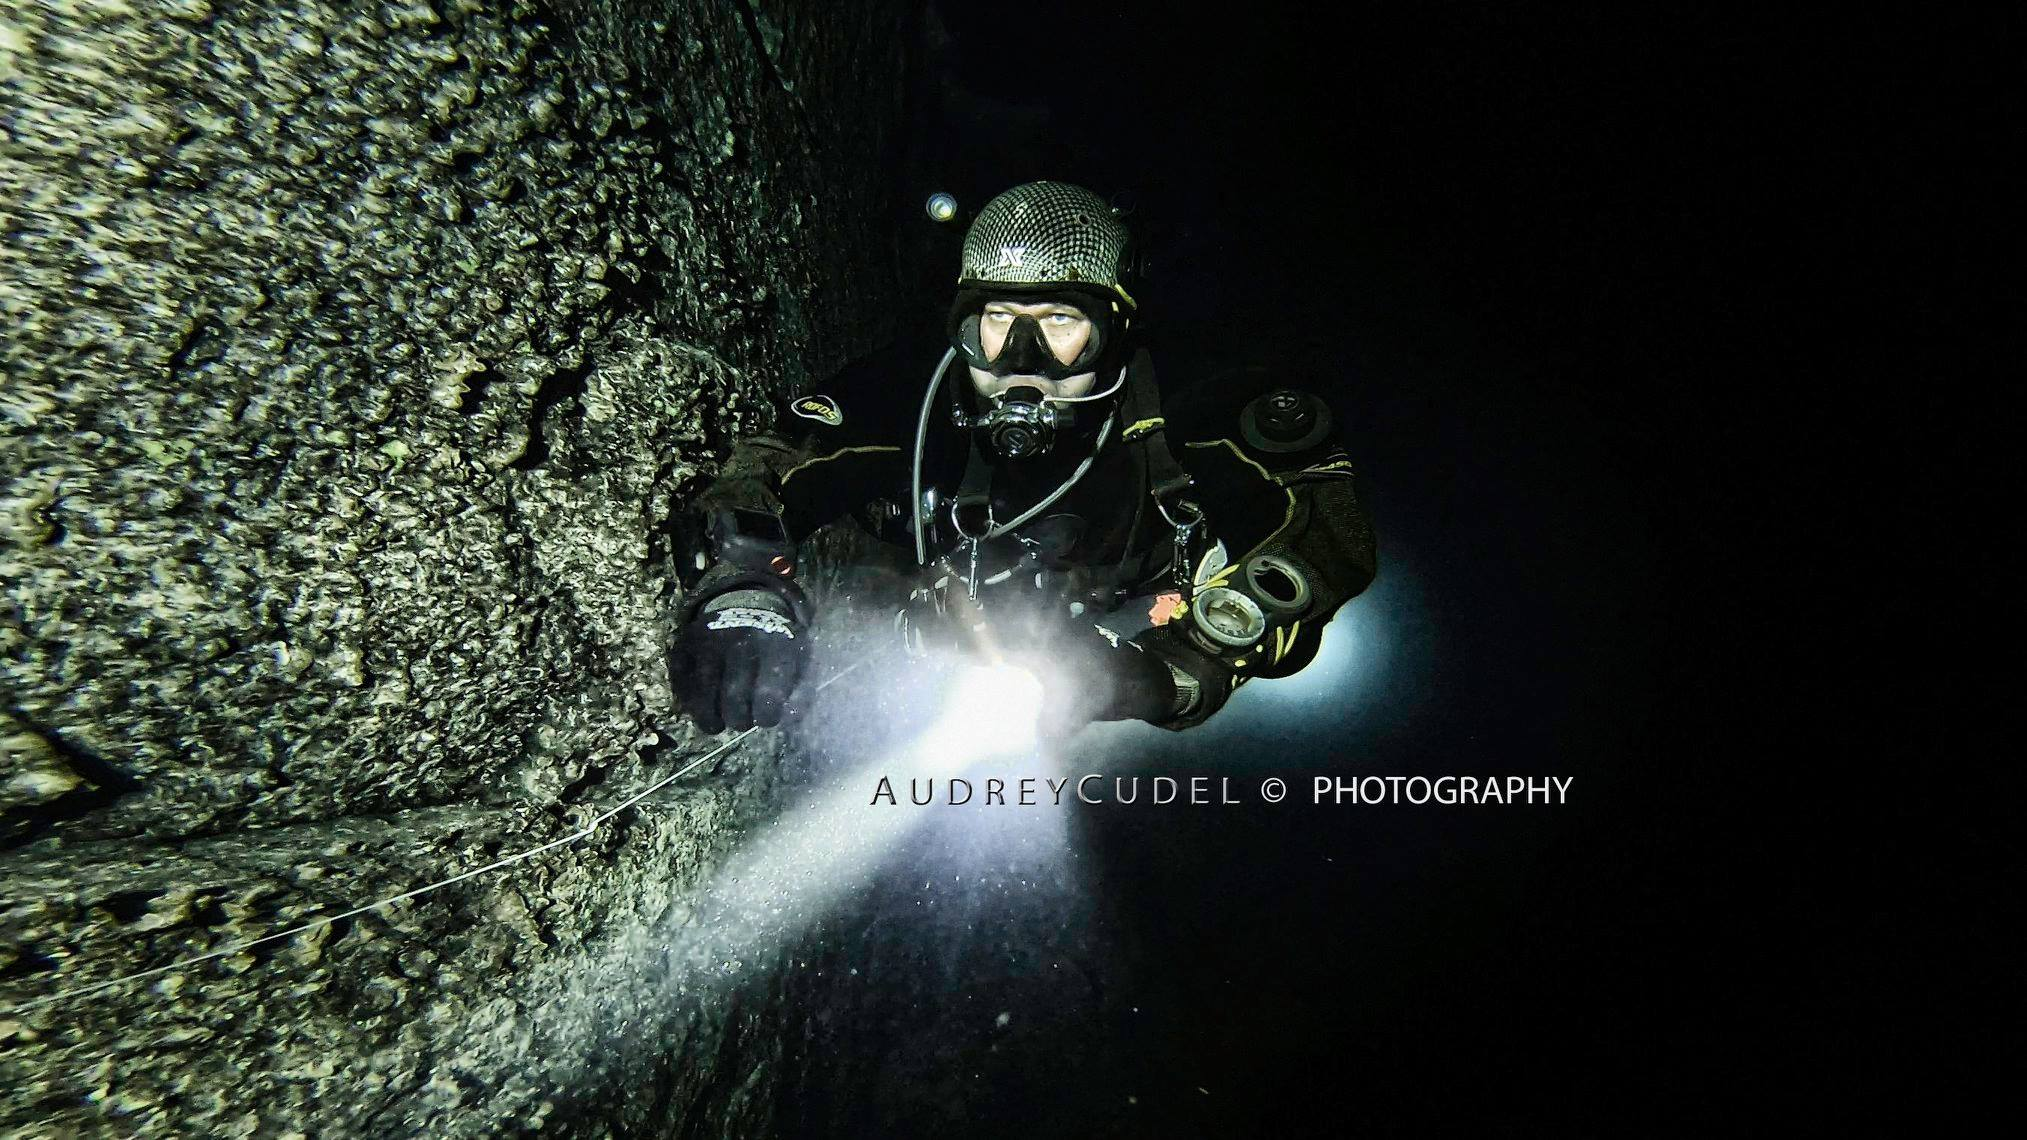 - Yorn (Diver) Cavern & Intro to Cave Courses, 2017 'When i did my Cavern & Intro to Cave with Audrey she guided me into a whole new world of diving. demanding, unforgiving and accepting nothing but perfection she made sure that I can handle any situation in a non-forgiving environment. Her presence, professionalism and French charm are matchless. Like Bootcamp with Ice-Cream. I loved it and can't think of anyone better to bring me to next level.'